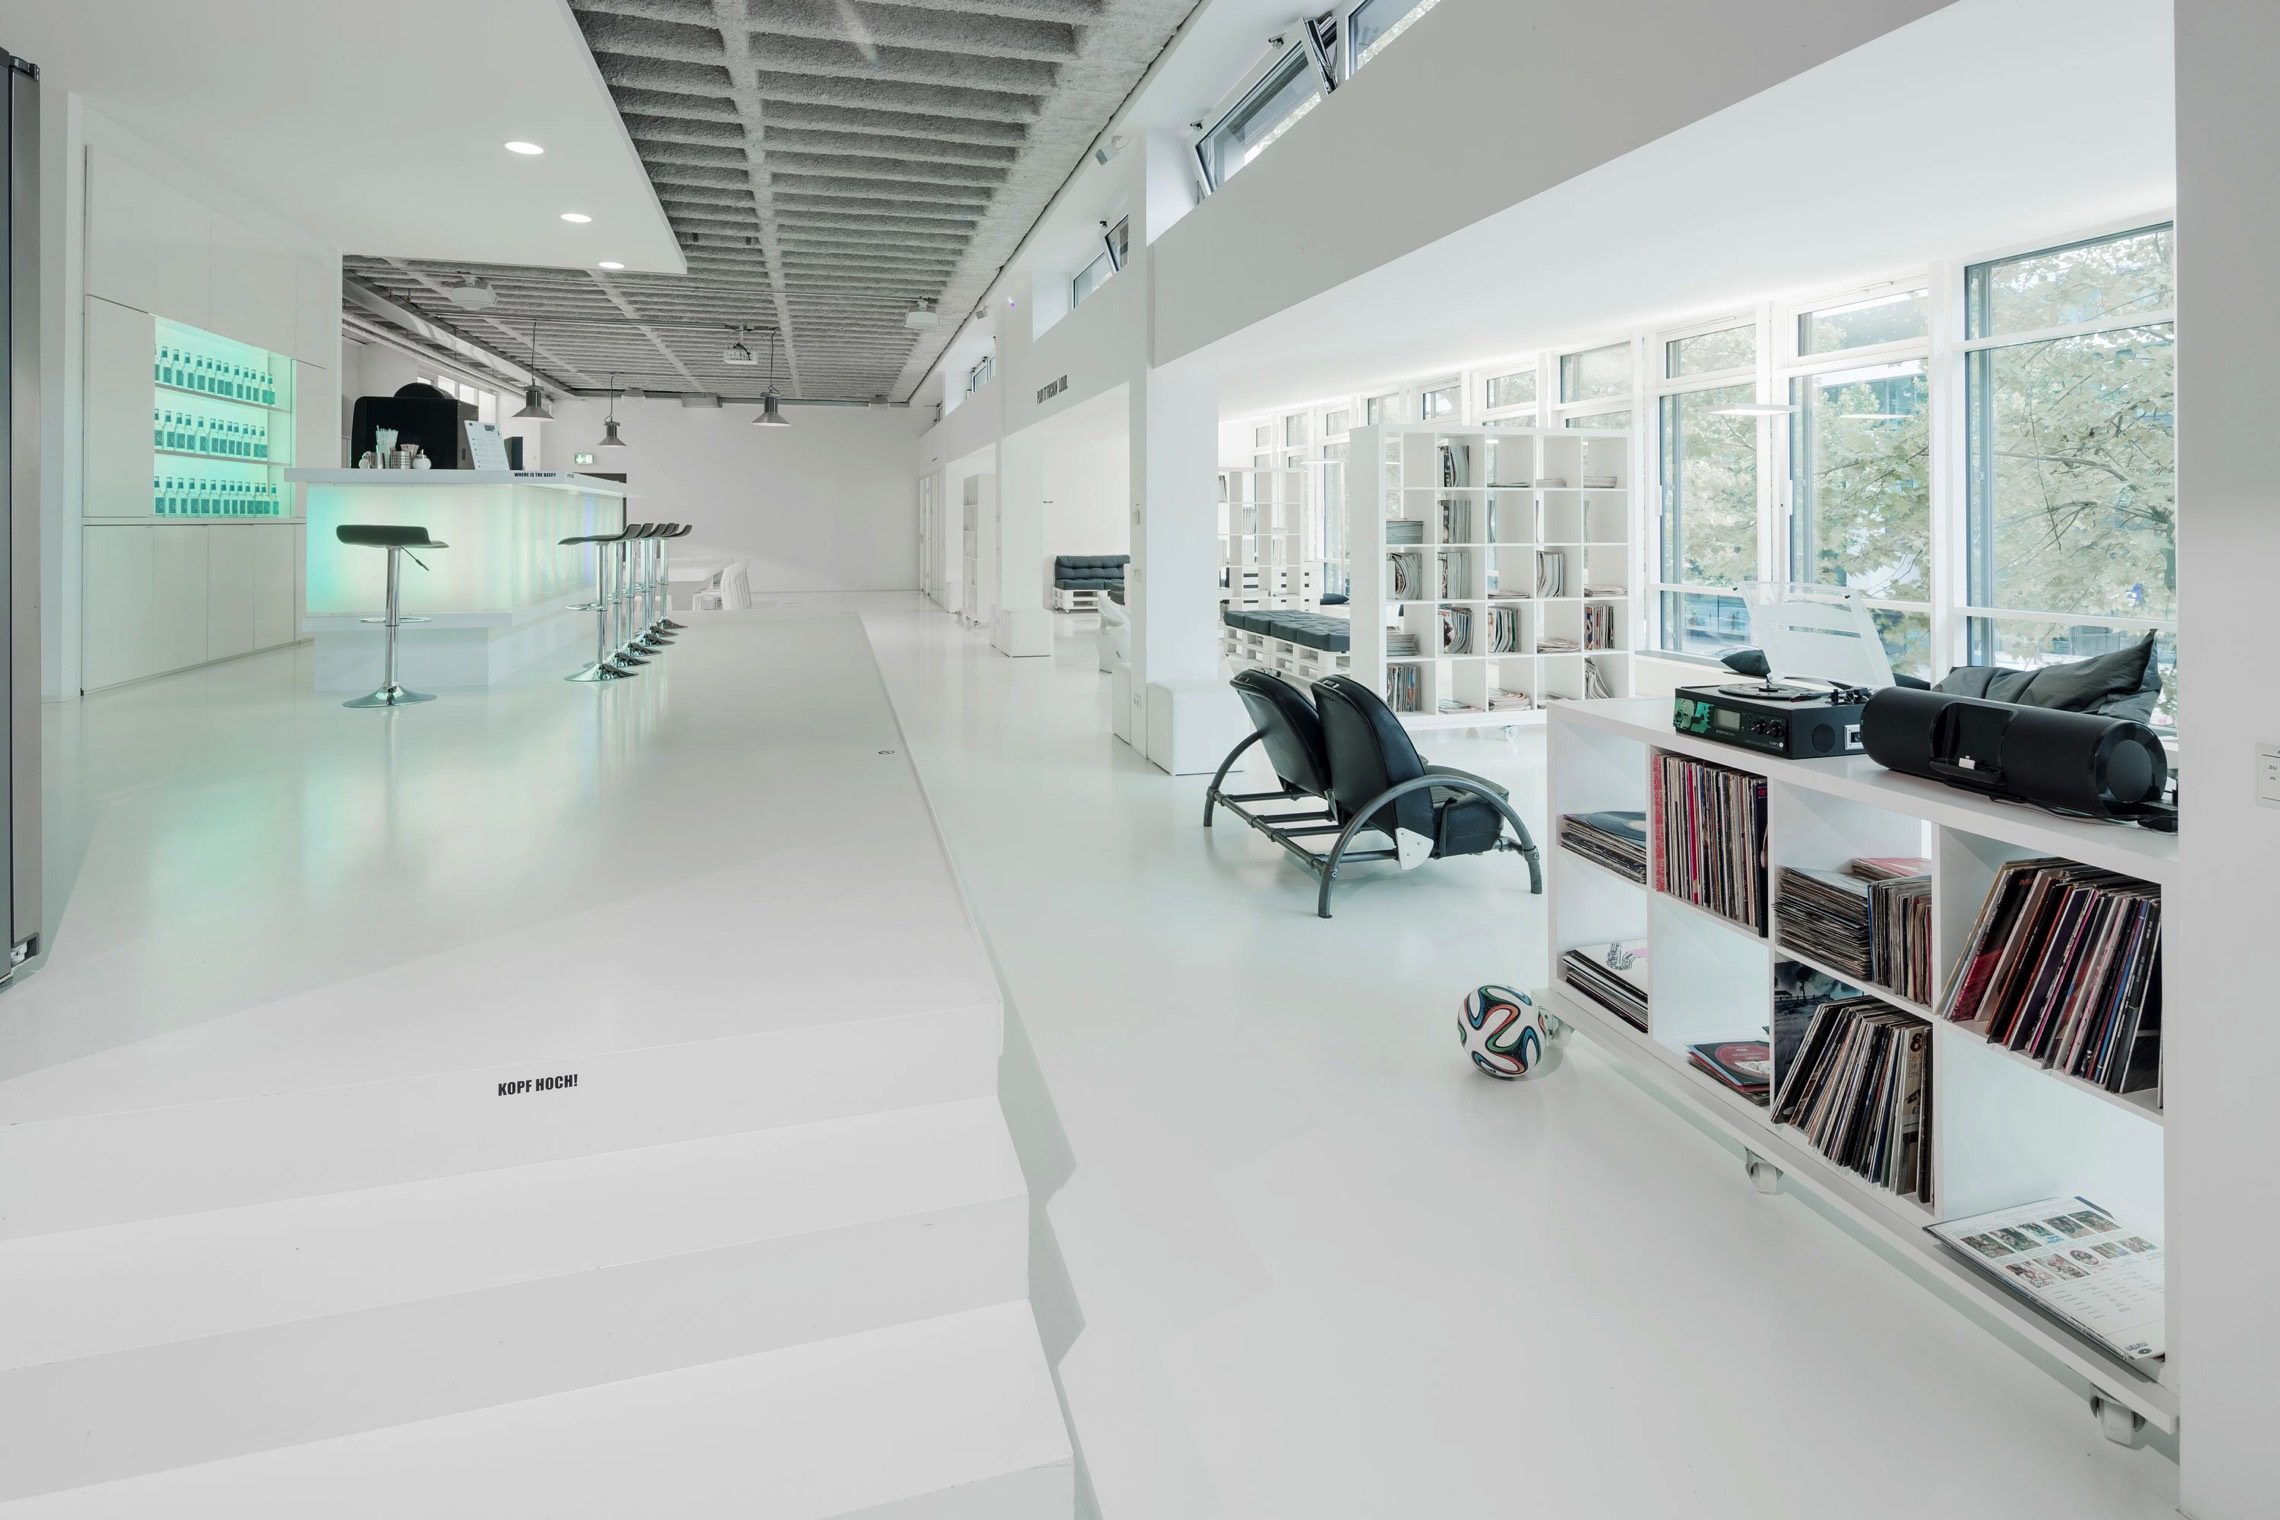 How To Design Spaces For People With >> Urban Offices Office Inspiration